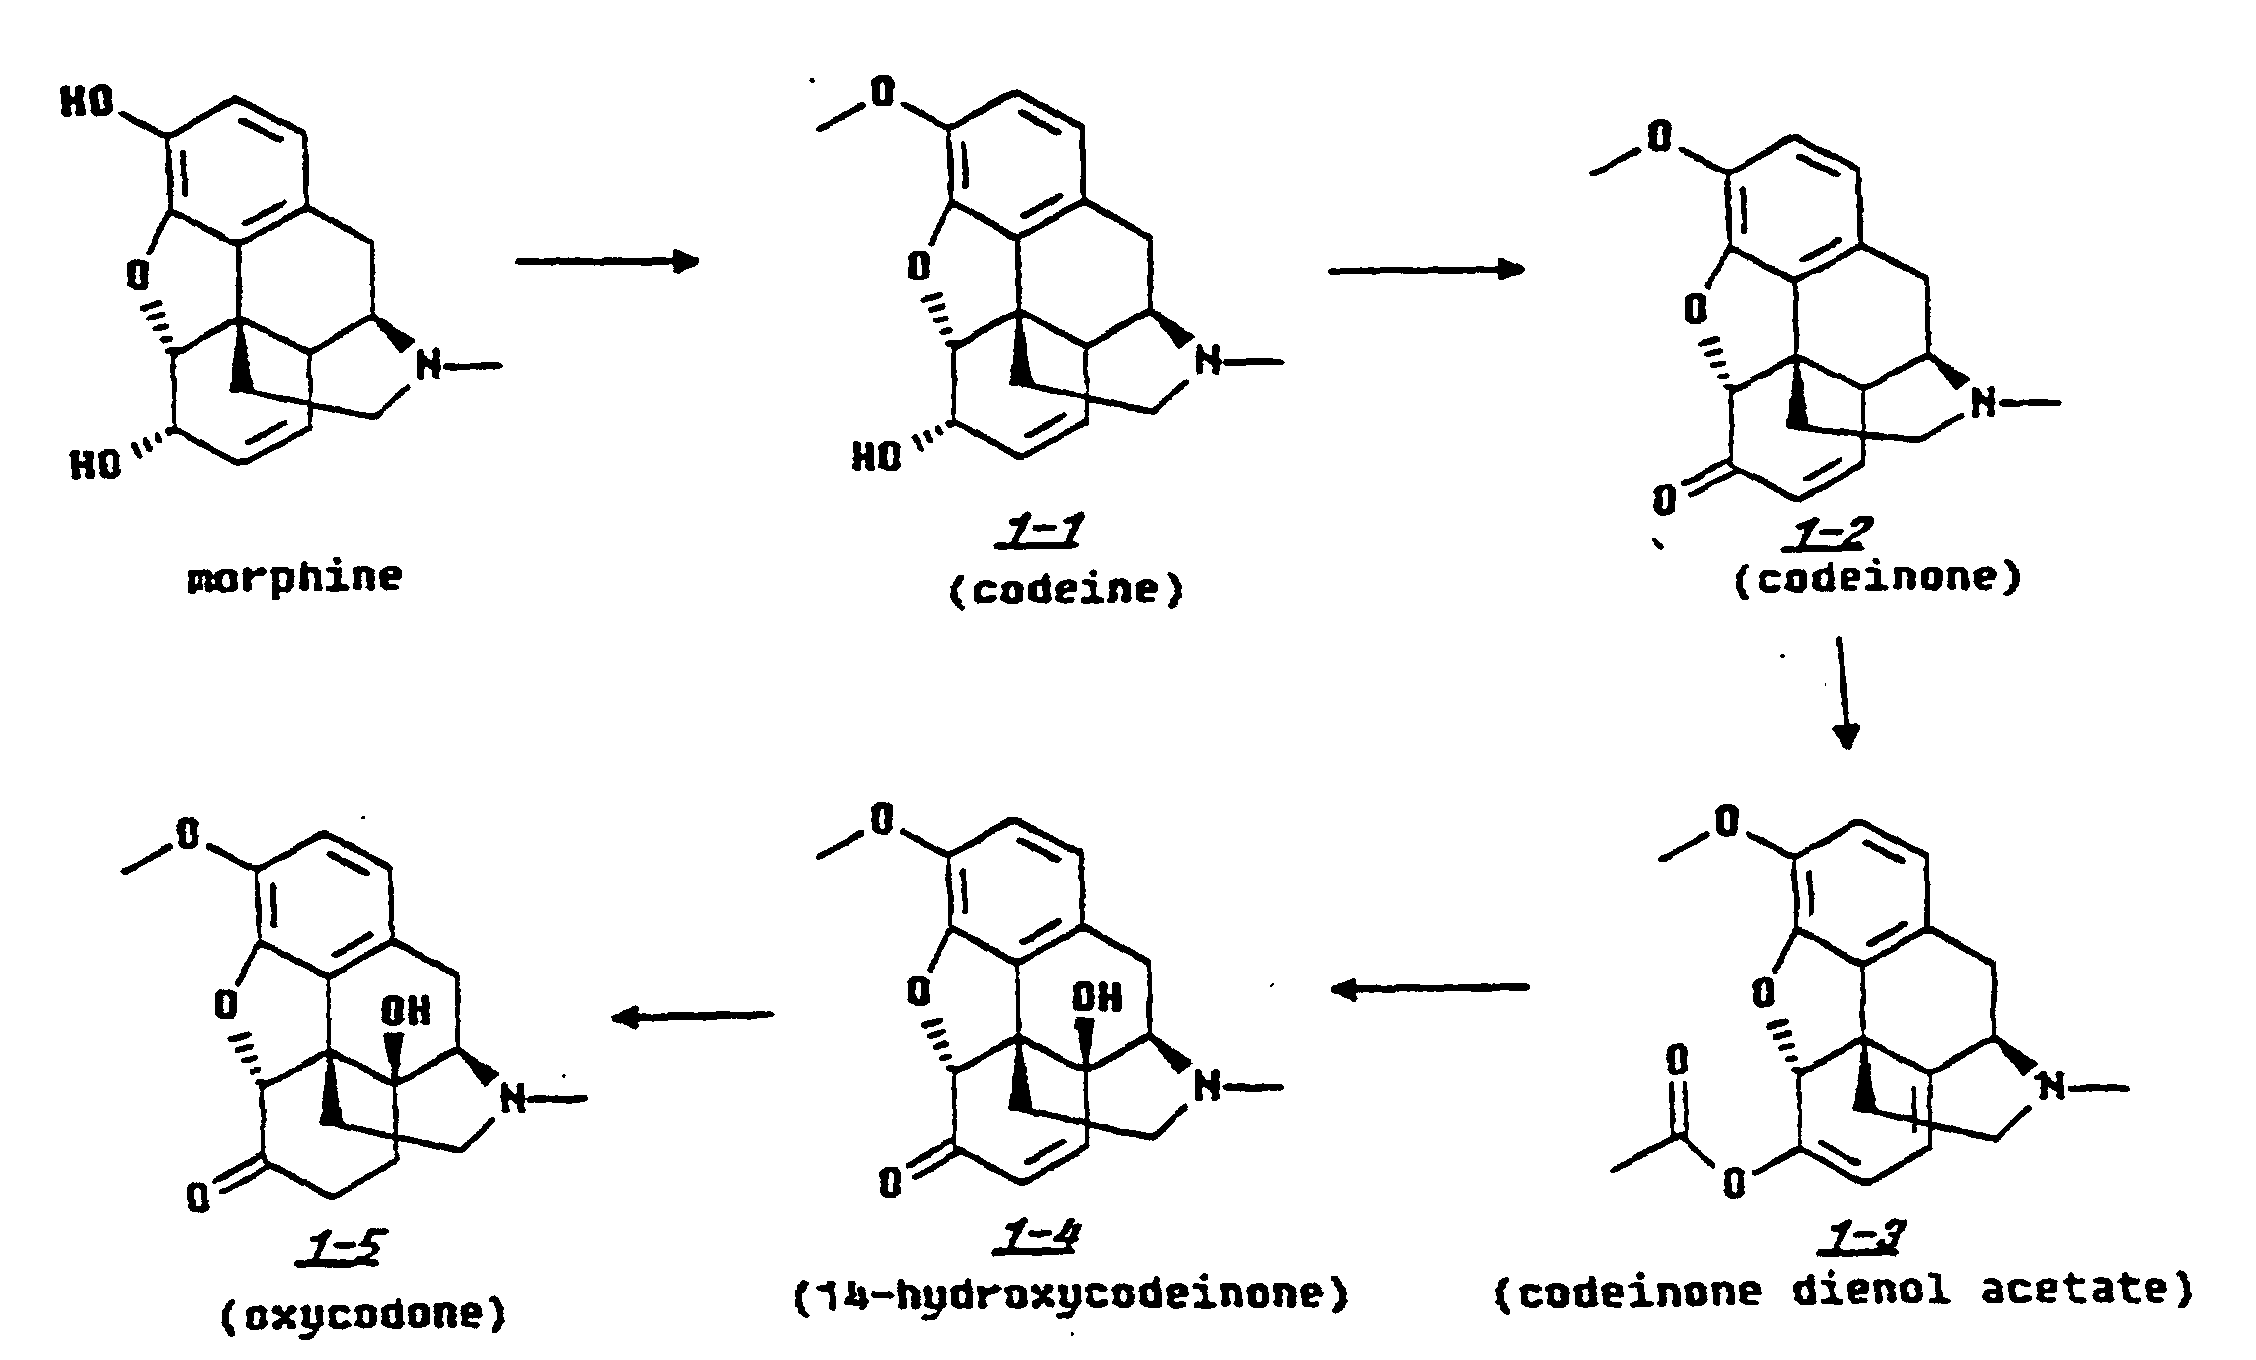 synthesising oxycodone This step-wise approach to pain relief recommends non-opioid analgesics such as acetaminophen and nsaids for mild-to-moderate pain weak opioids, such as codeine, dihydrocodeine or tramadol, for moderate-to-severe pain and stronger opioids, such as oxycodone and morphine, for severe pain.